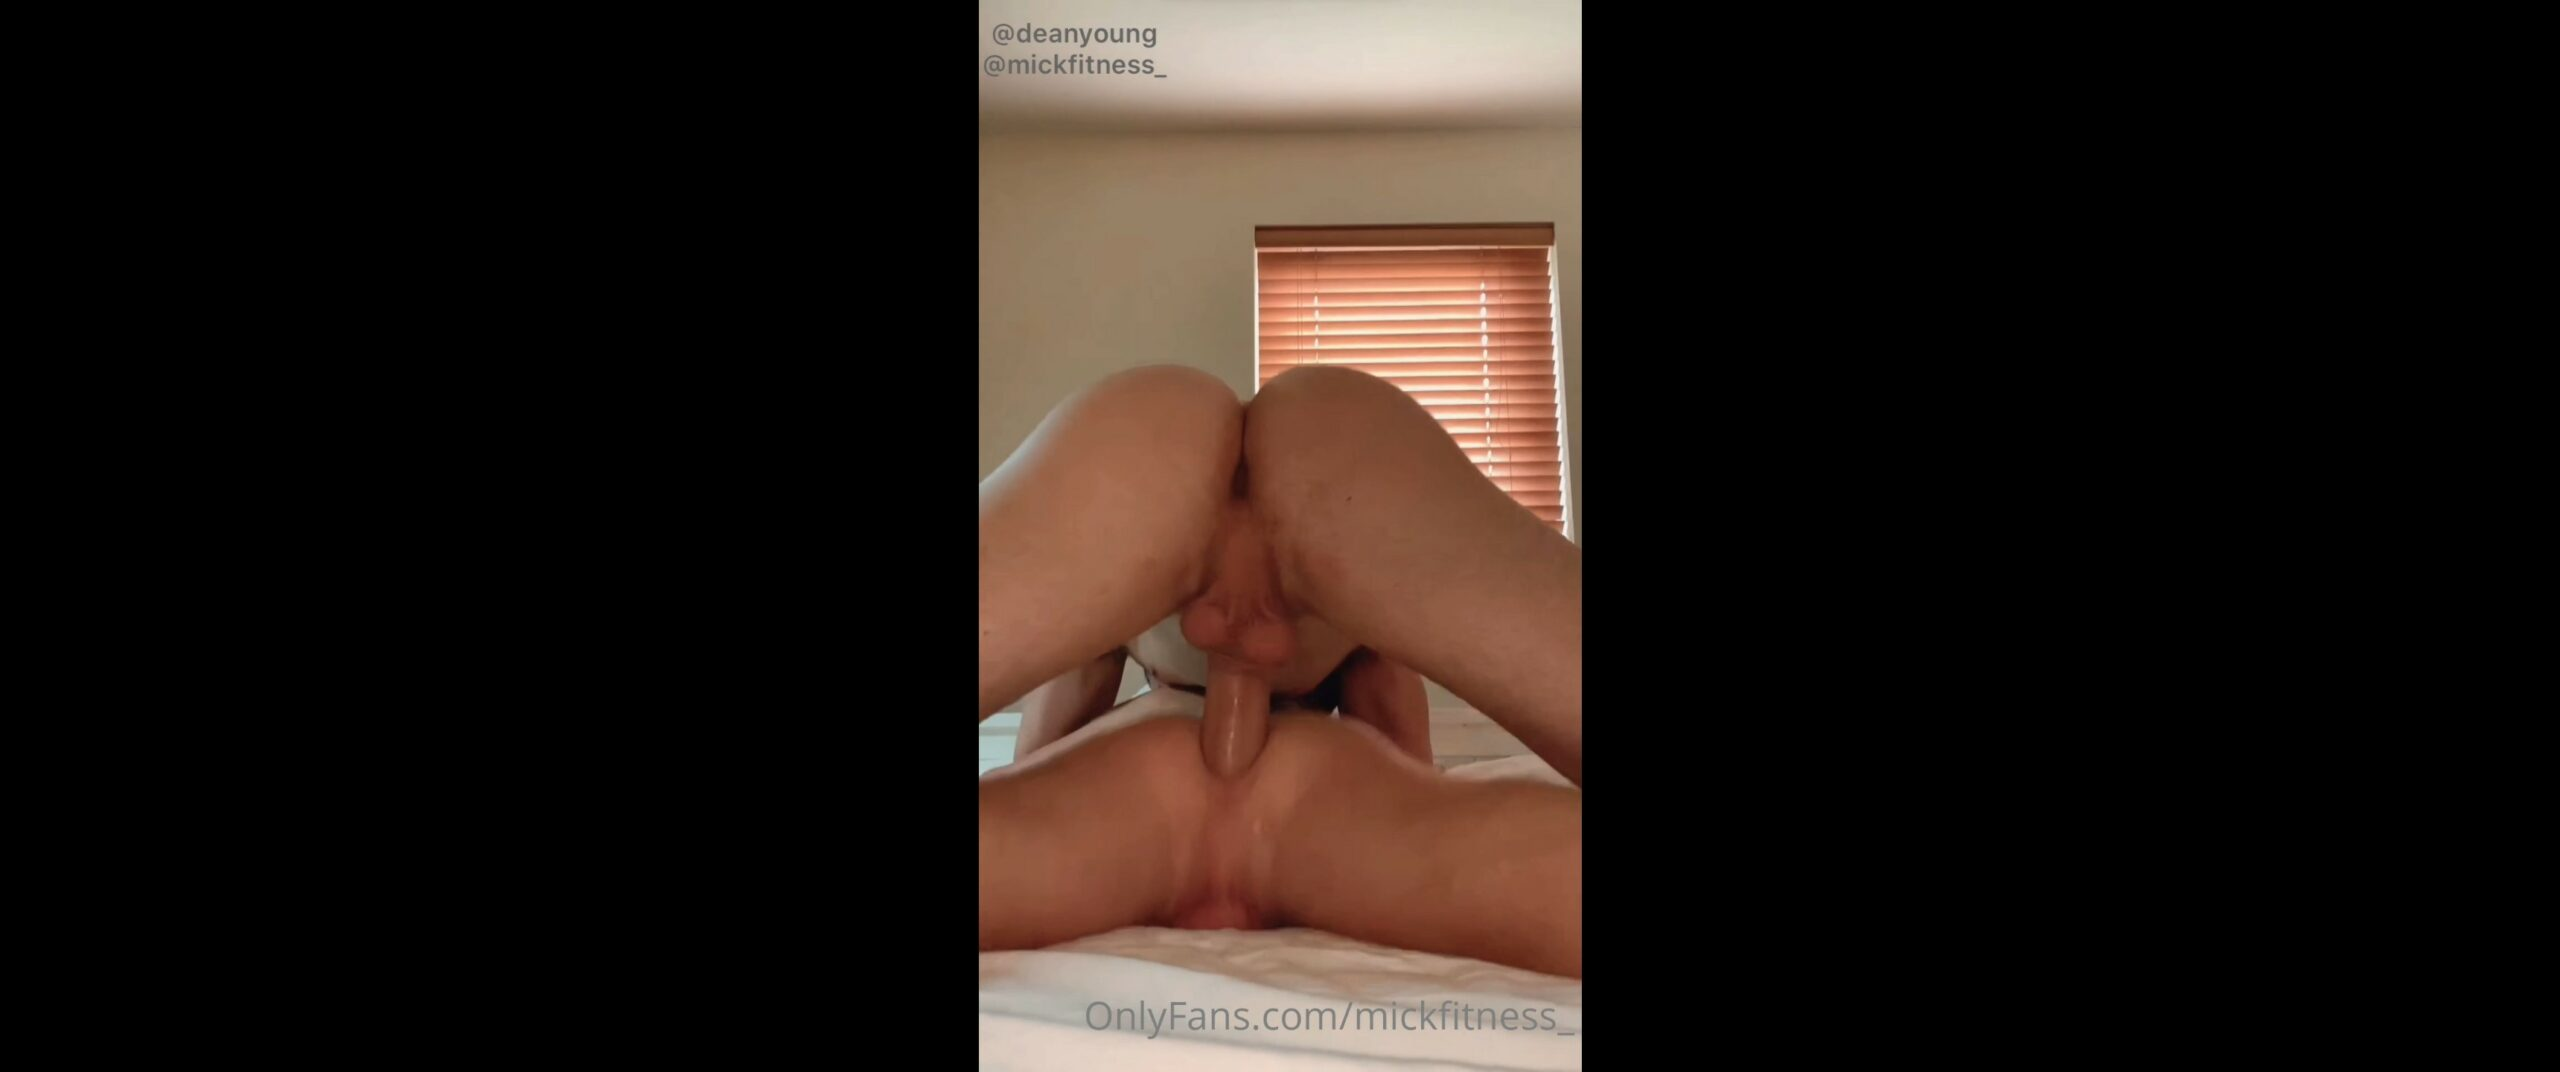 Fucking a young twinks hole hard with my thick cock - MickFitness